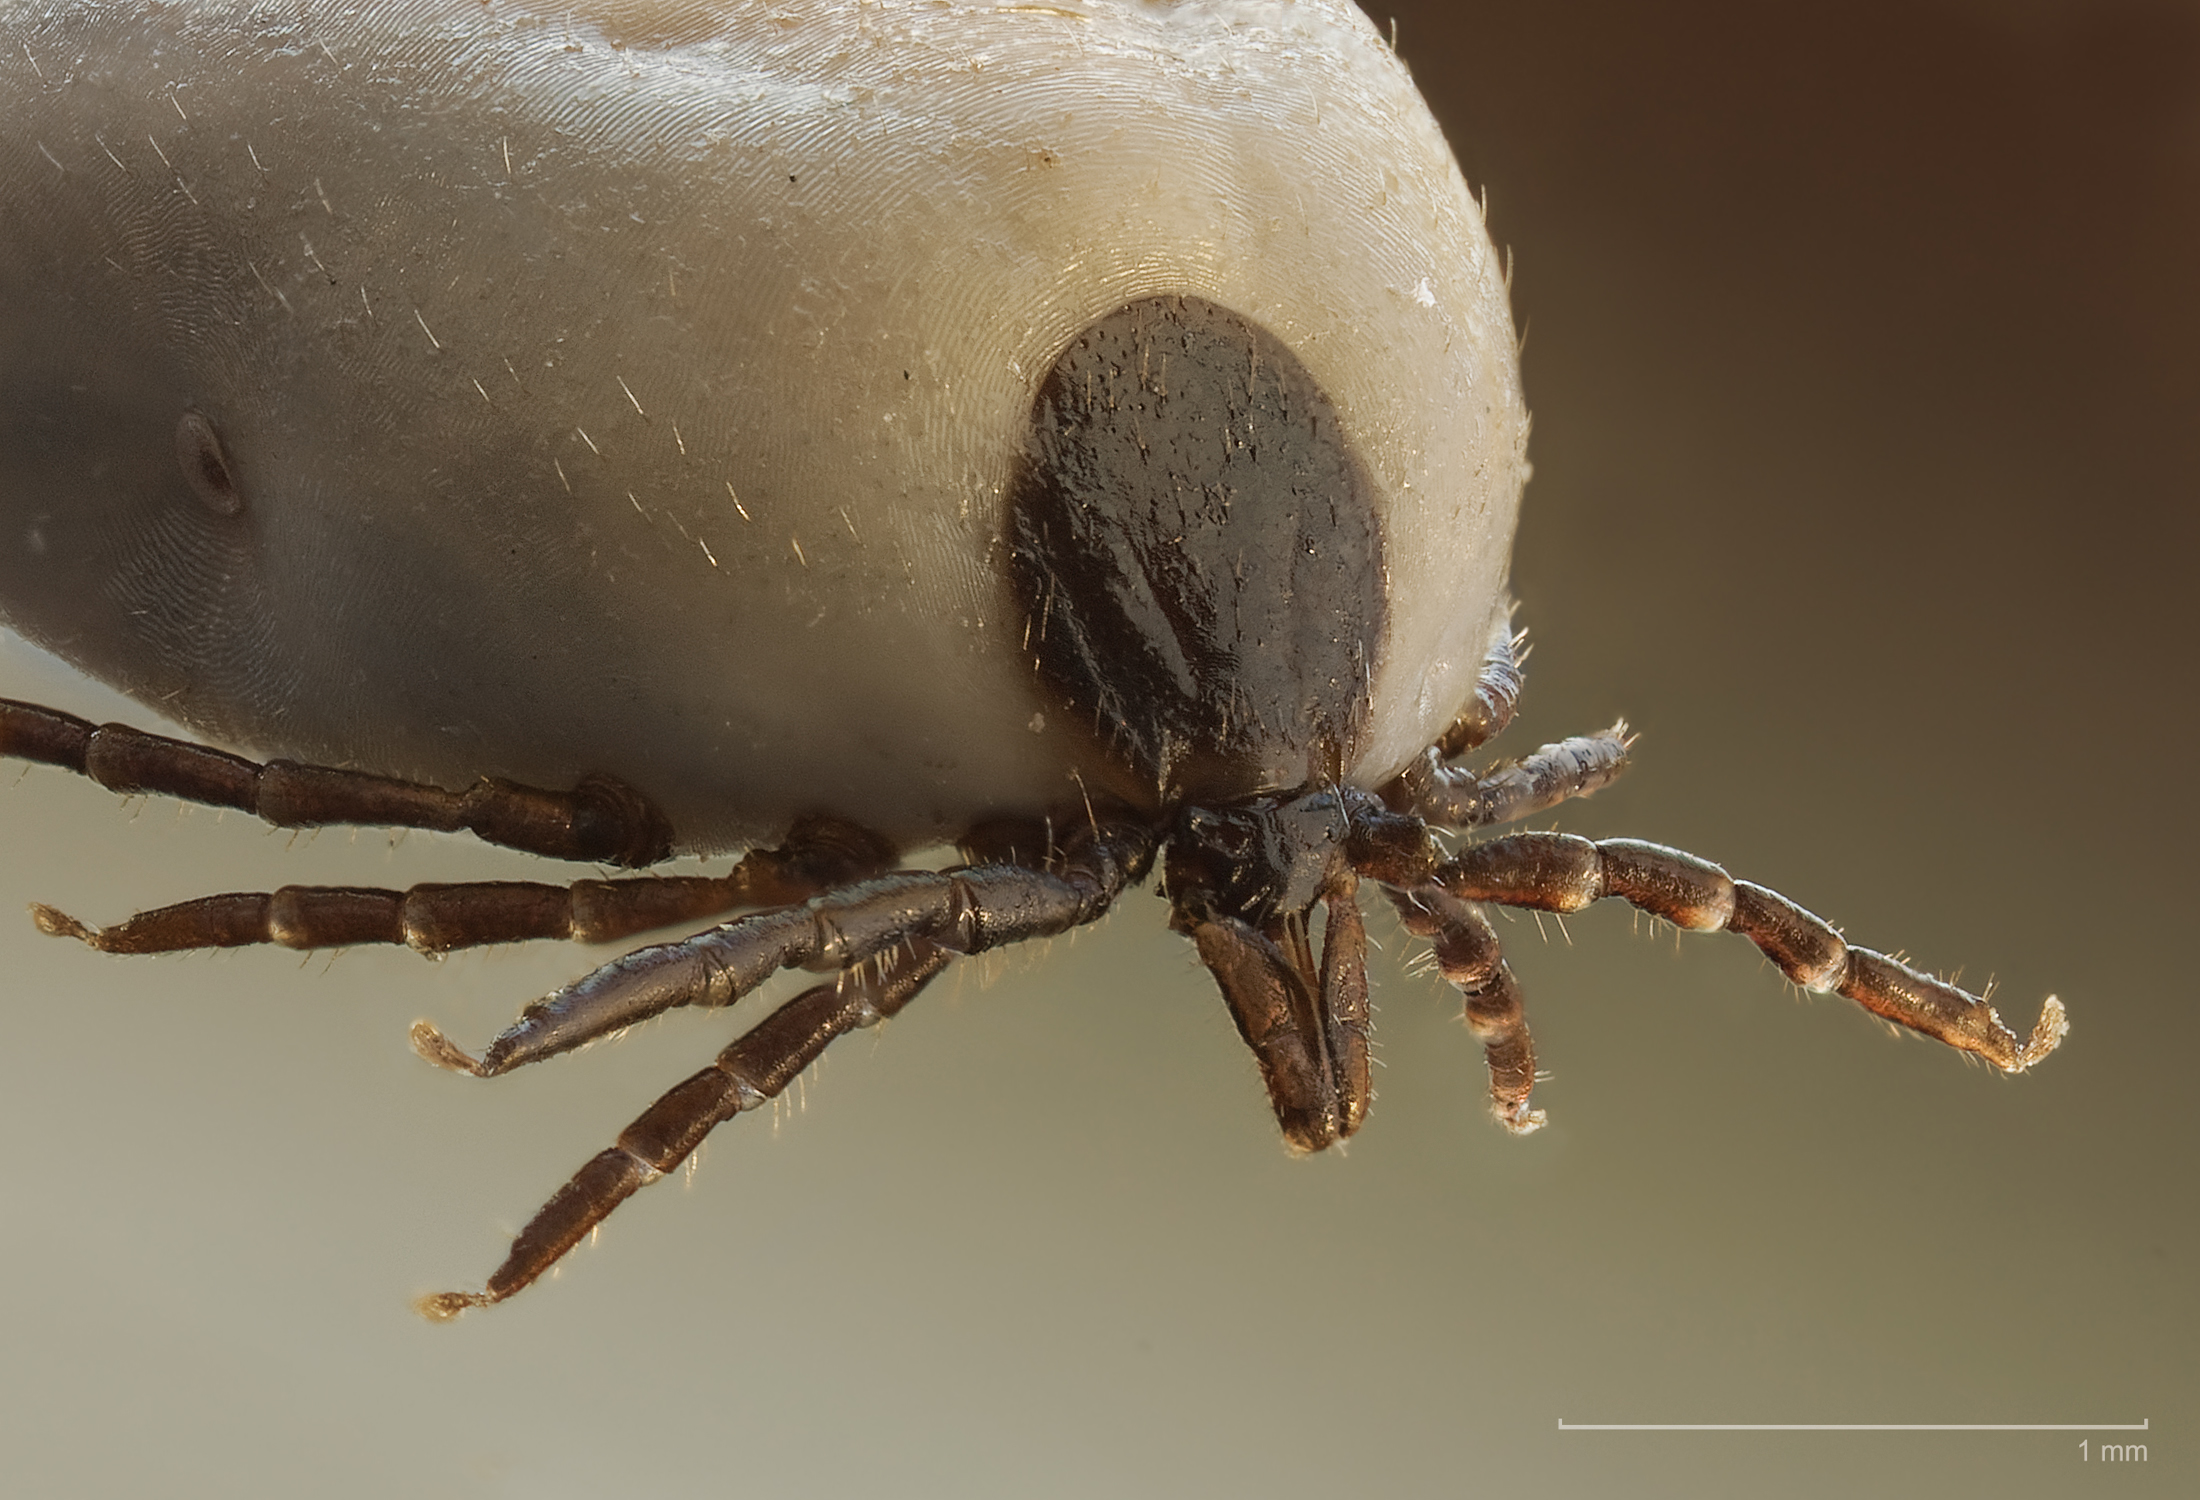 Sheep ticks can transmit encephalitis. This image shows an engorged female.